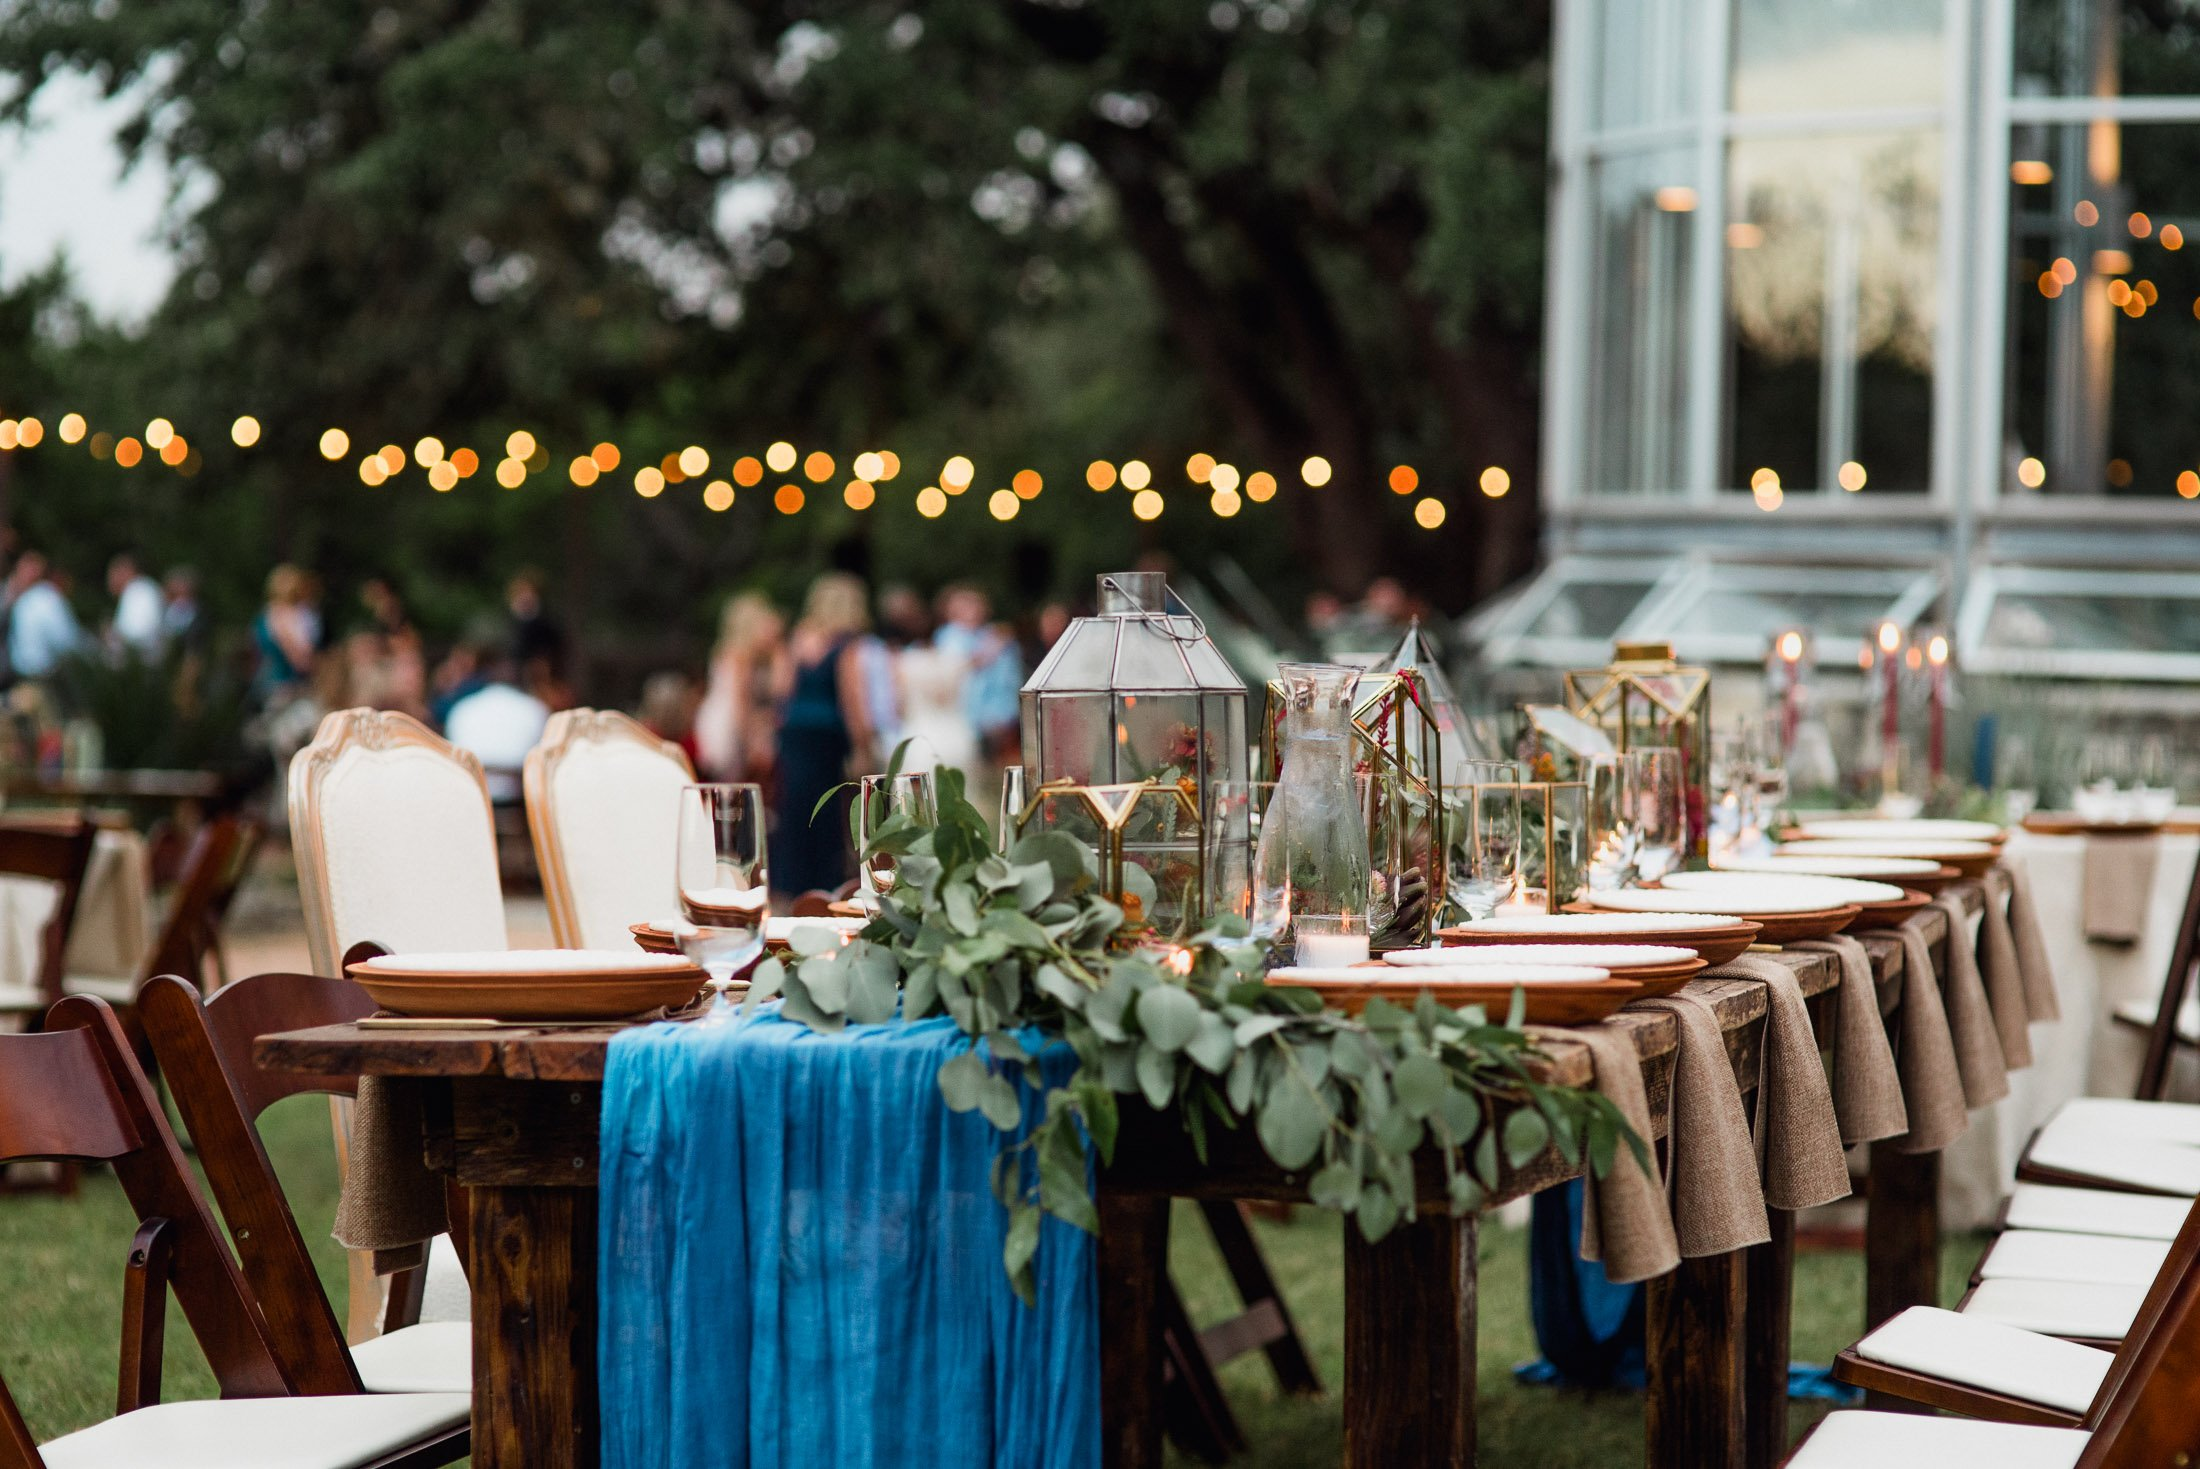 modern glass and cerulean blue table decor at an outdoor wedding in austin texas, colorful non-traditional wedding photography in austin texas